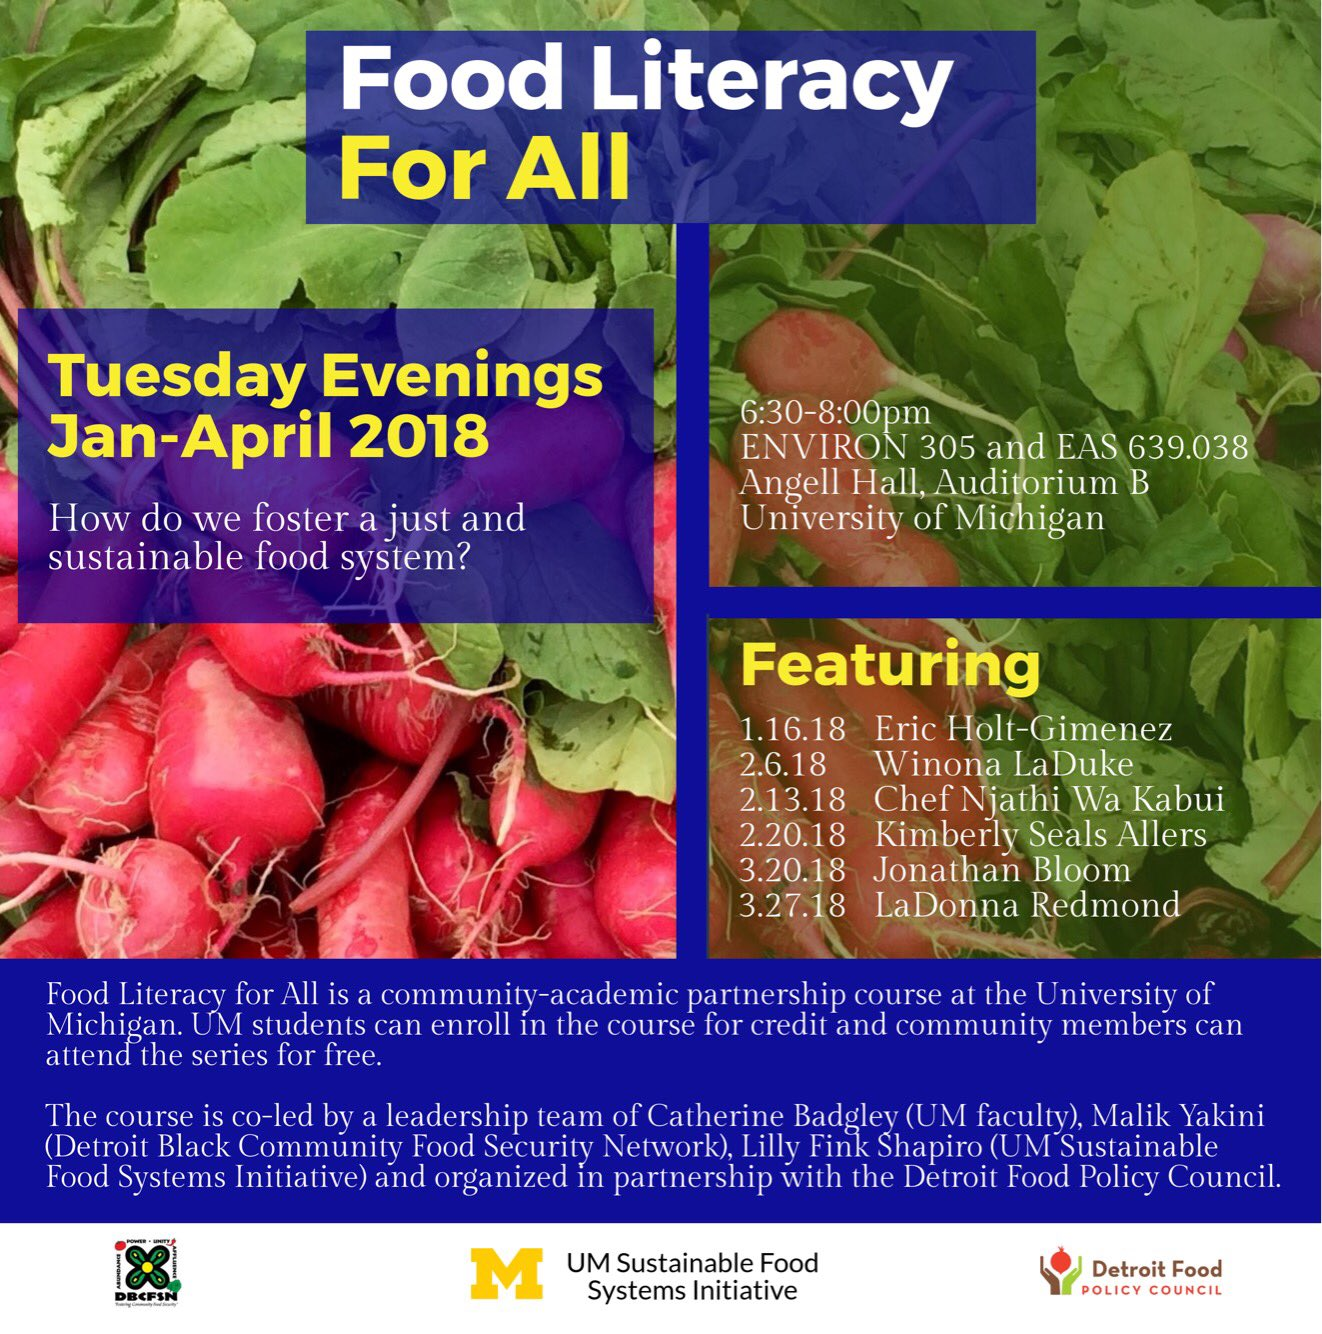 Detroit Food Policy Council On Twitter Save The Dates We Will Partnering Again This Next Year With U Of M And Dbcfsn For Food Literacy For All